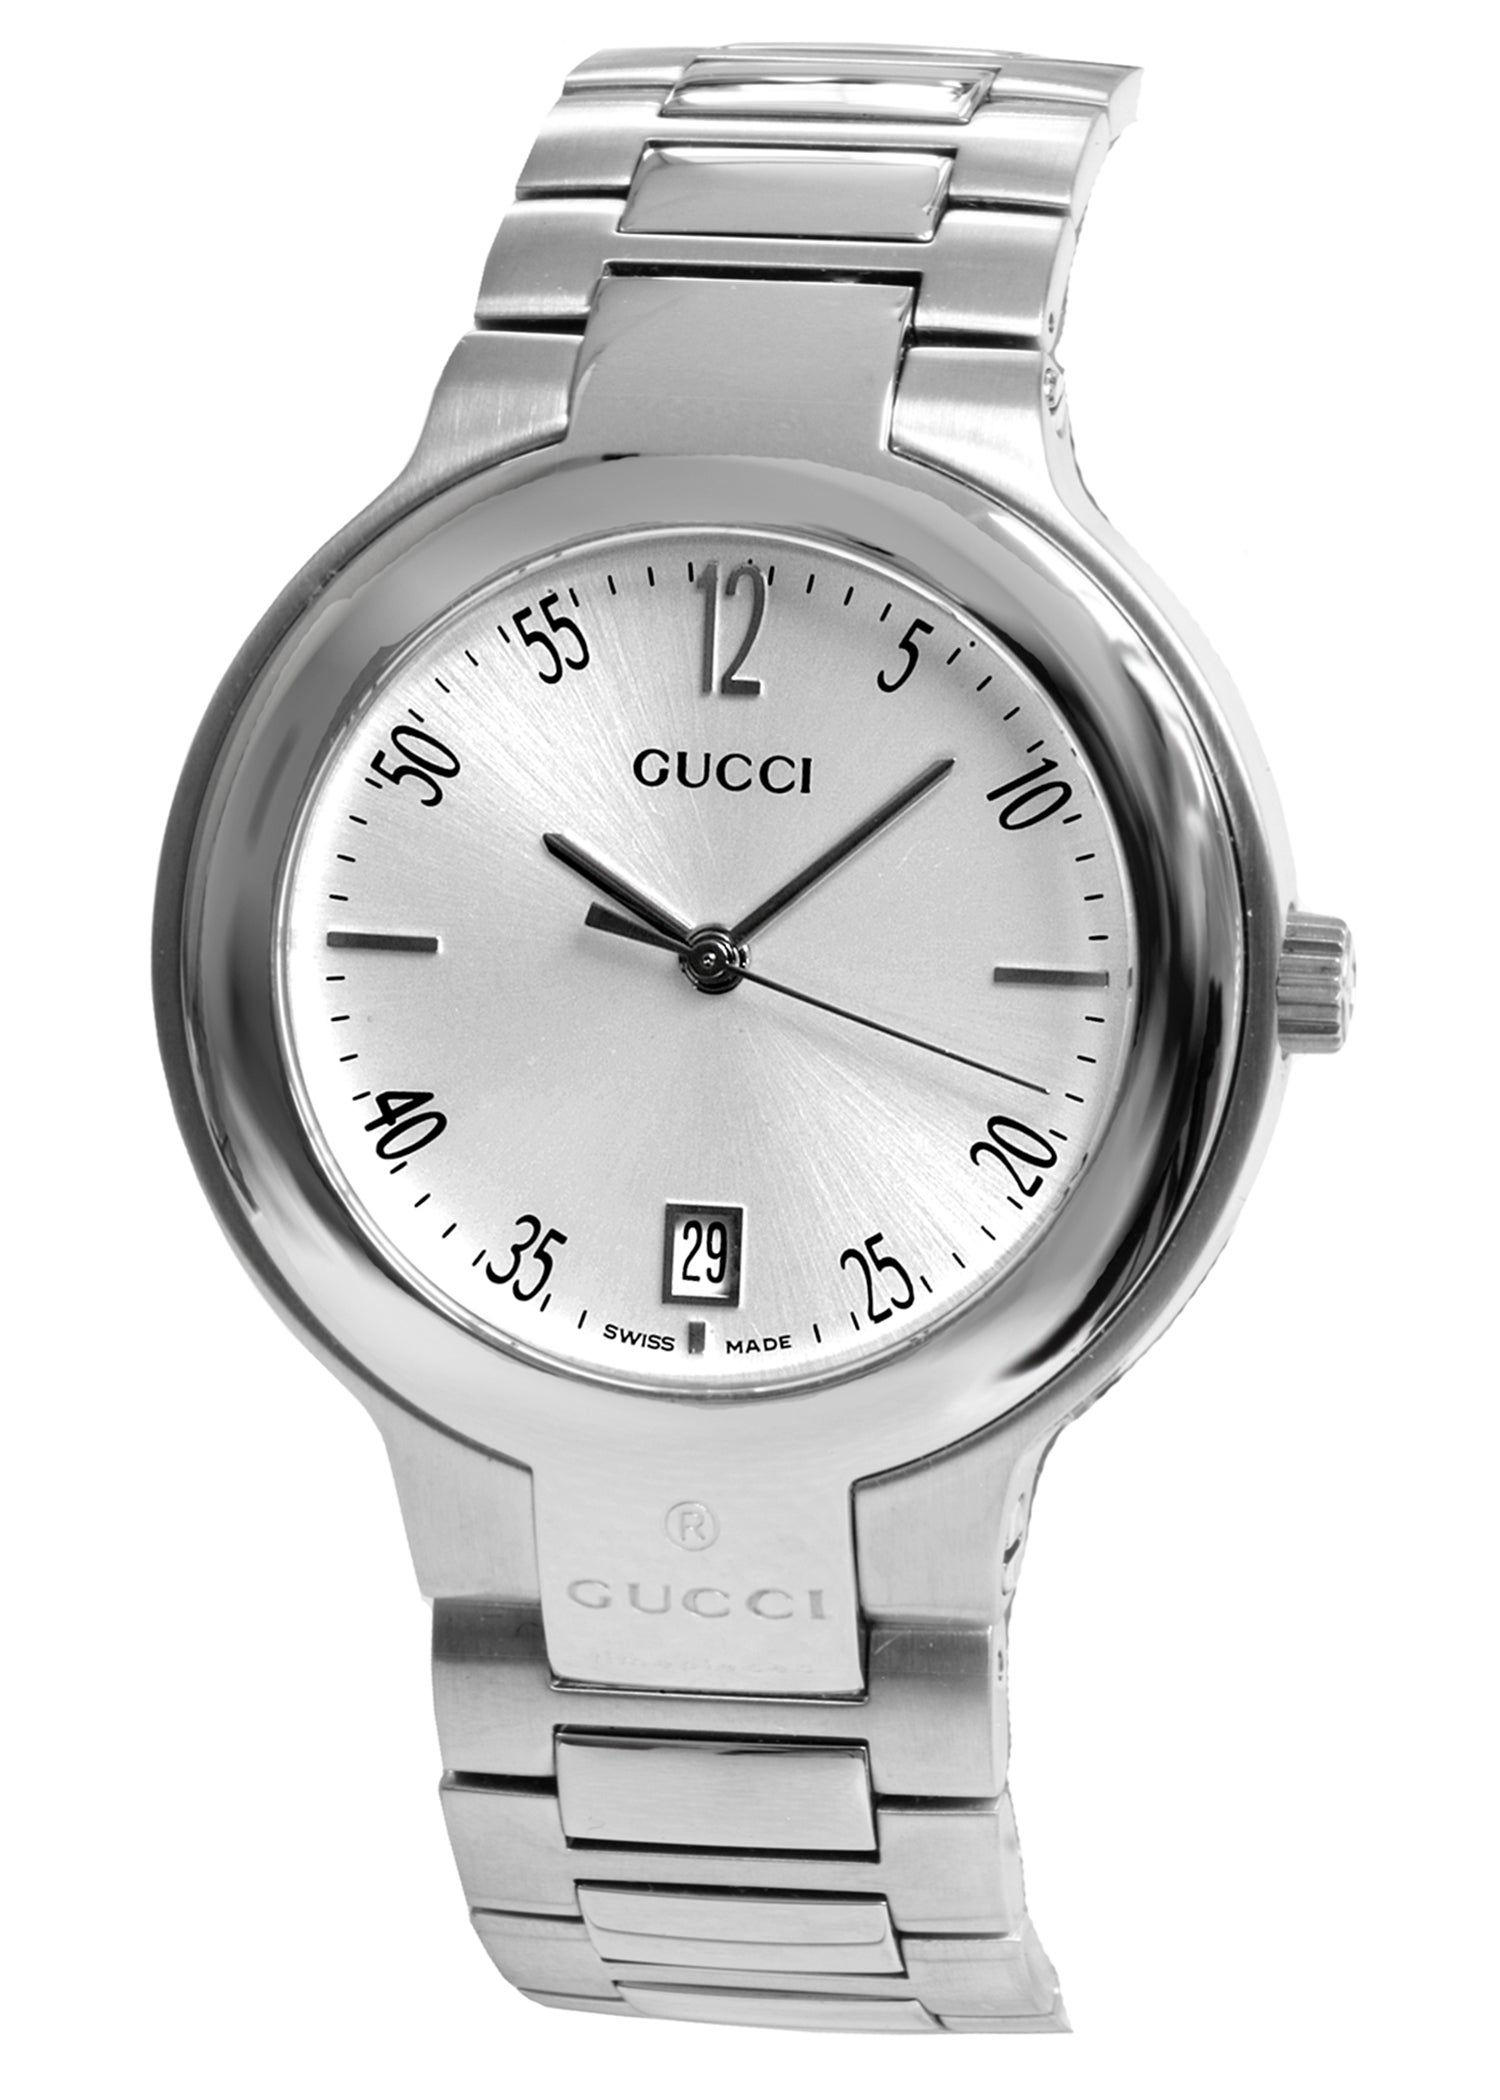 7c189a461b3 Shop Gucci 8905M Stainless Steel Silver Dial Watch - Free Shipping Today -  Overstock - 2682362